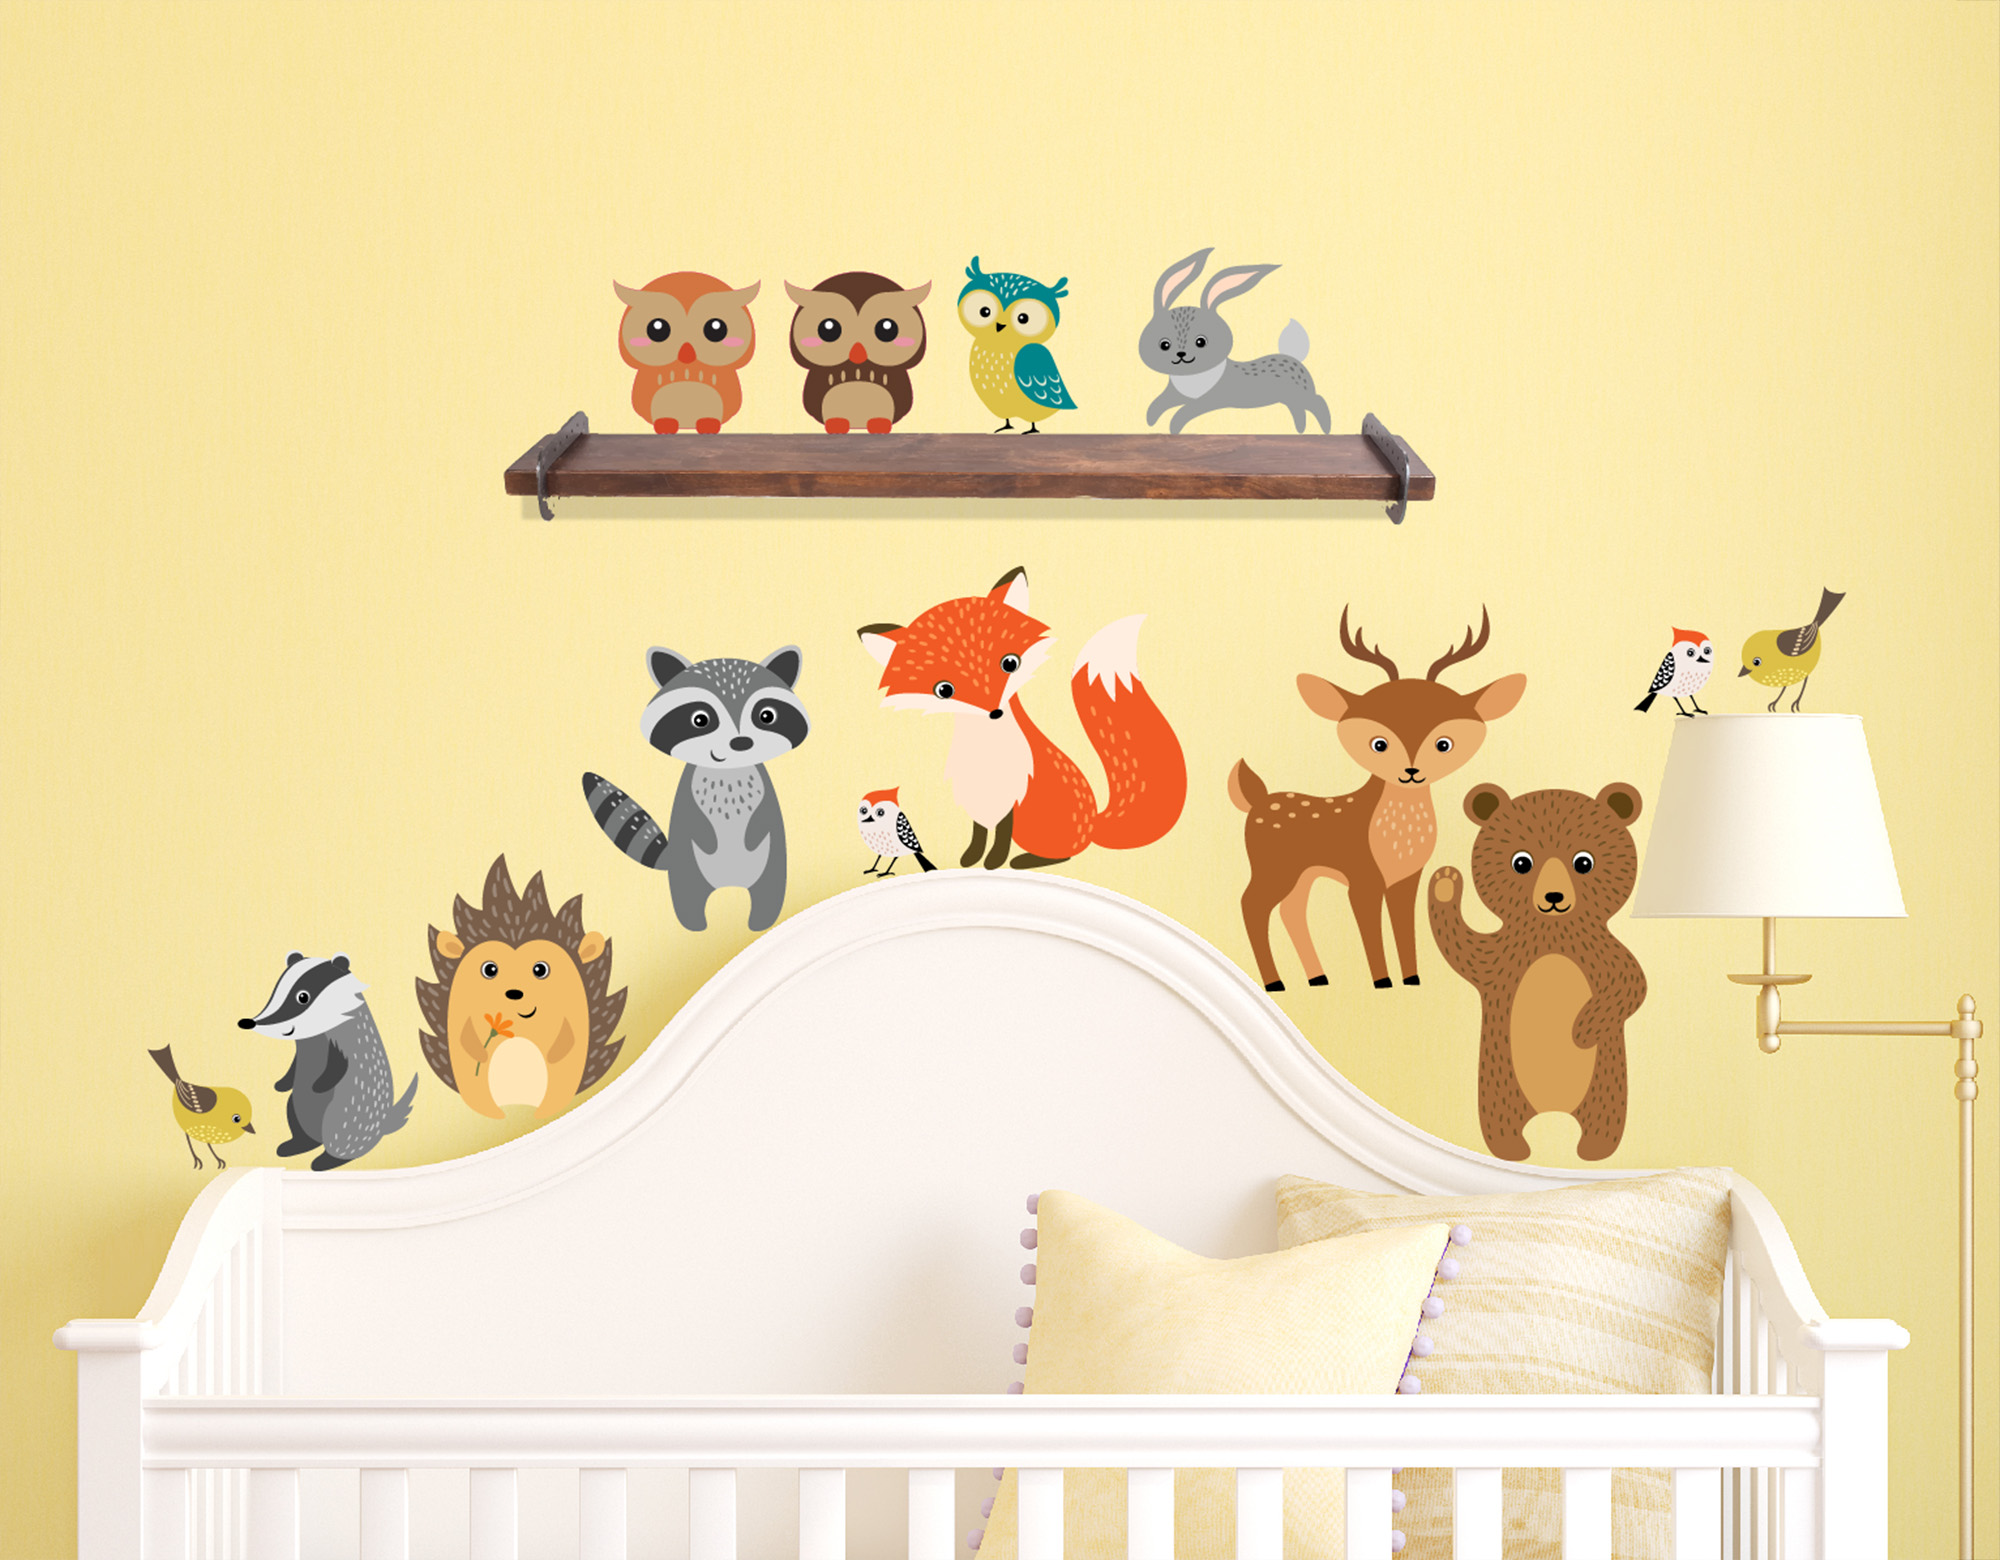 1408-woodland-animal-decals-nursery.jpg